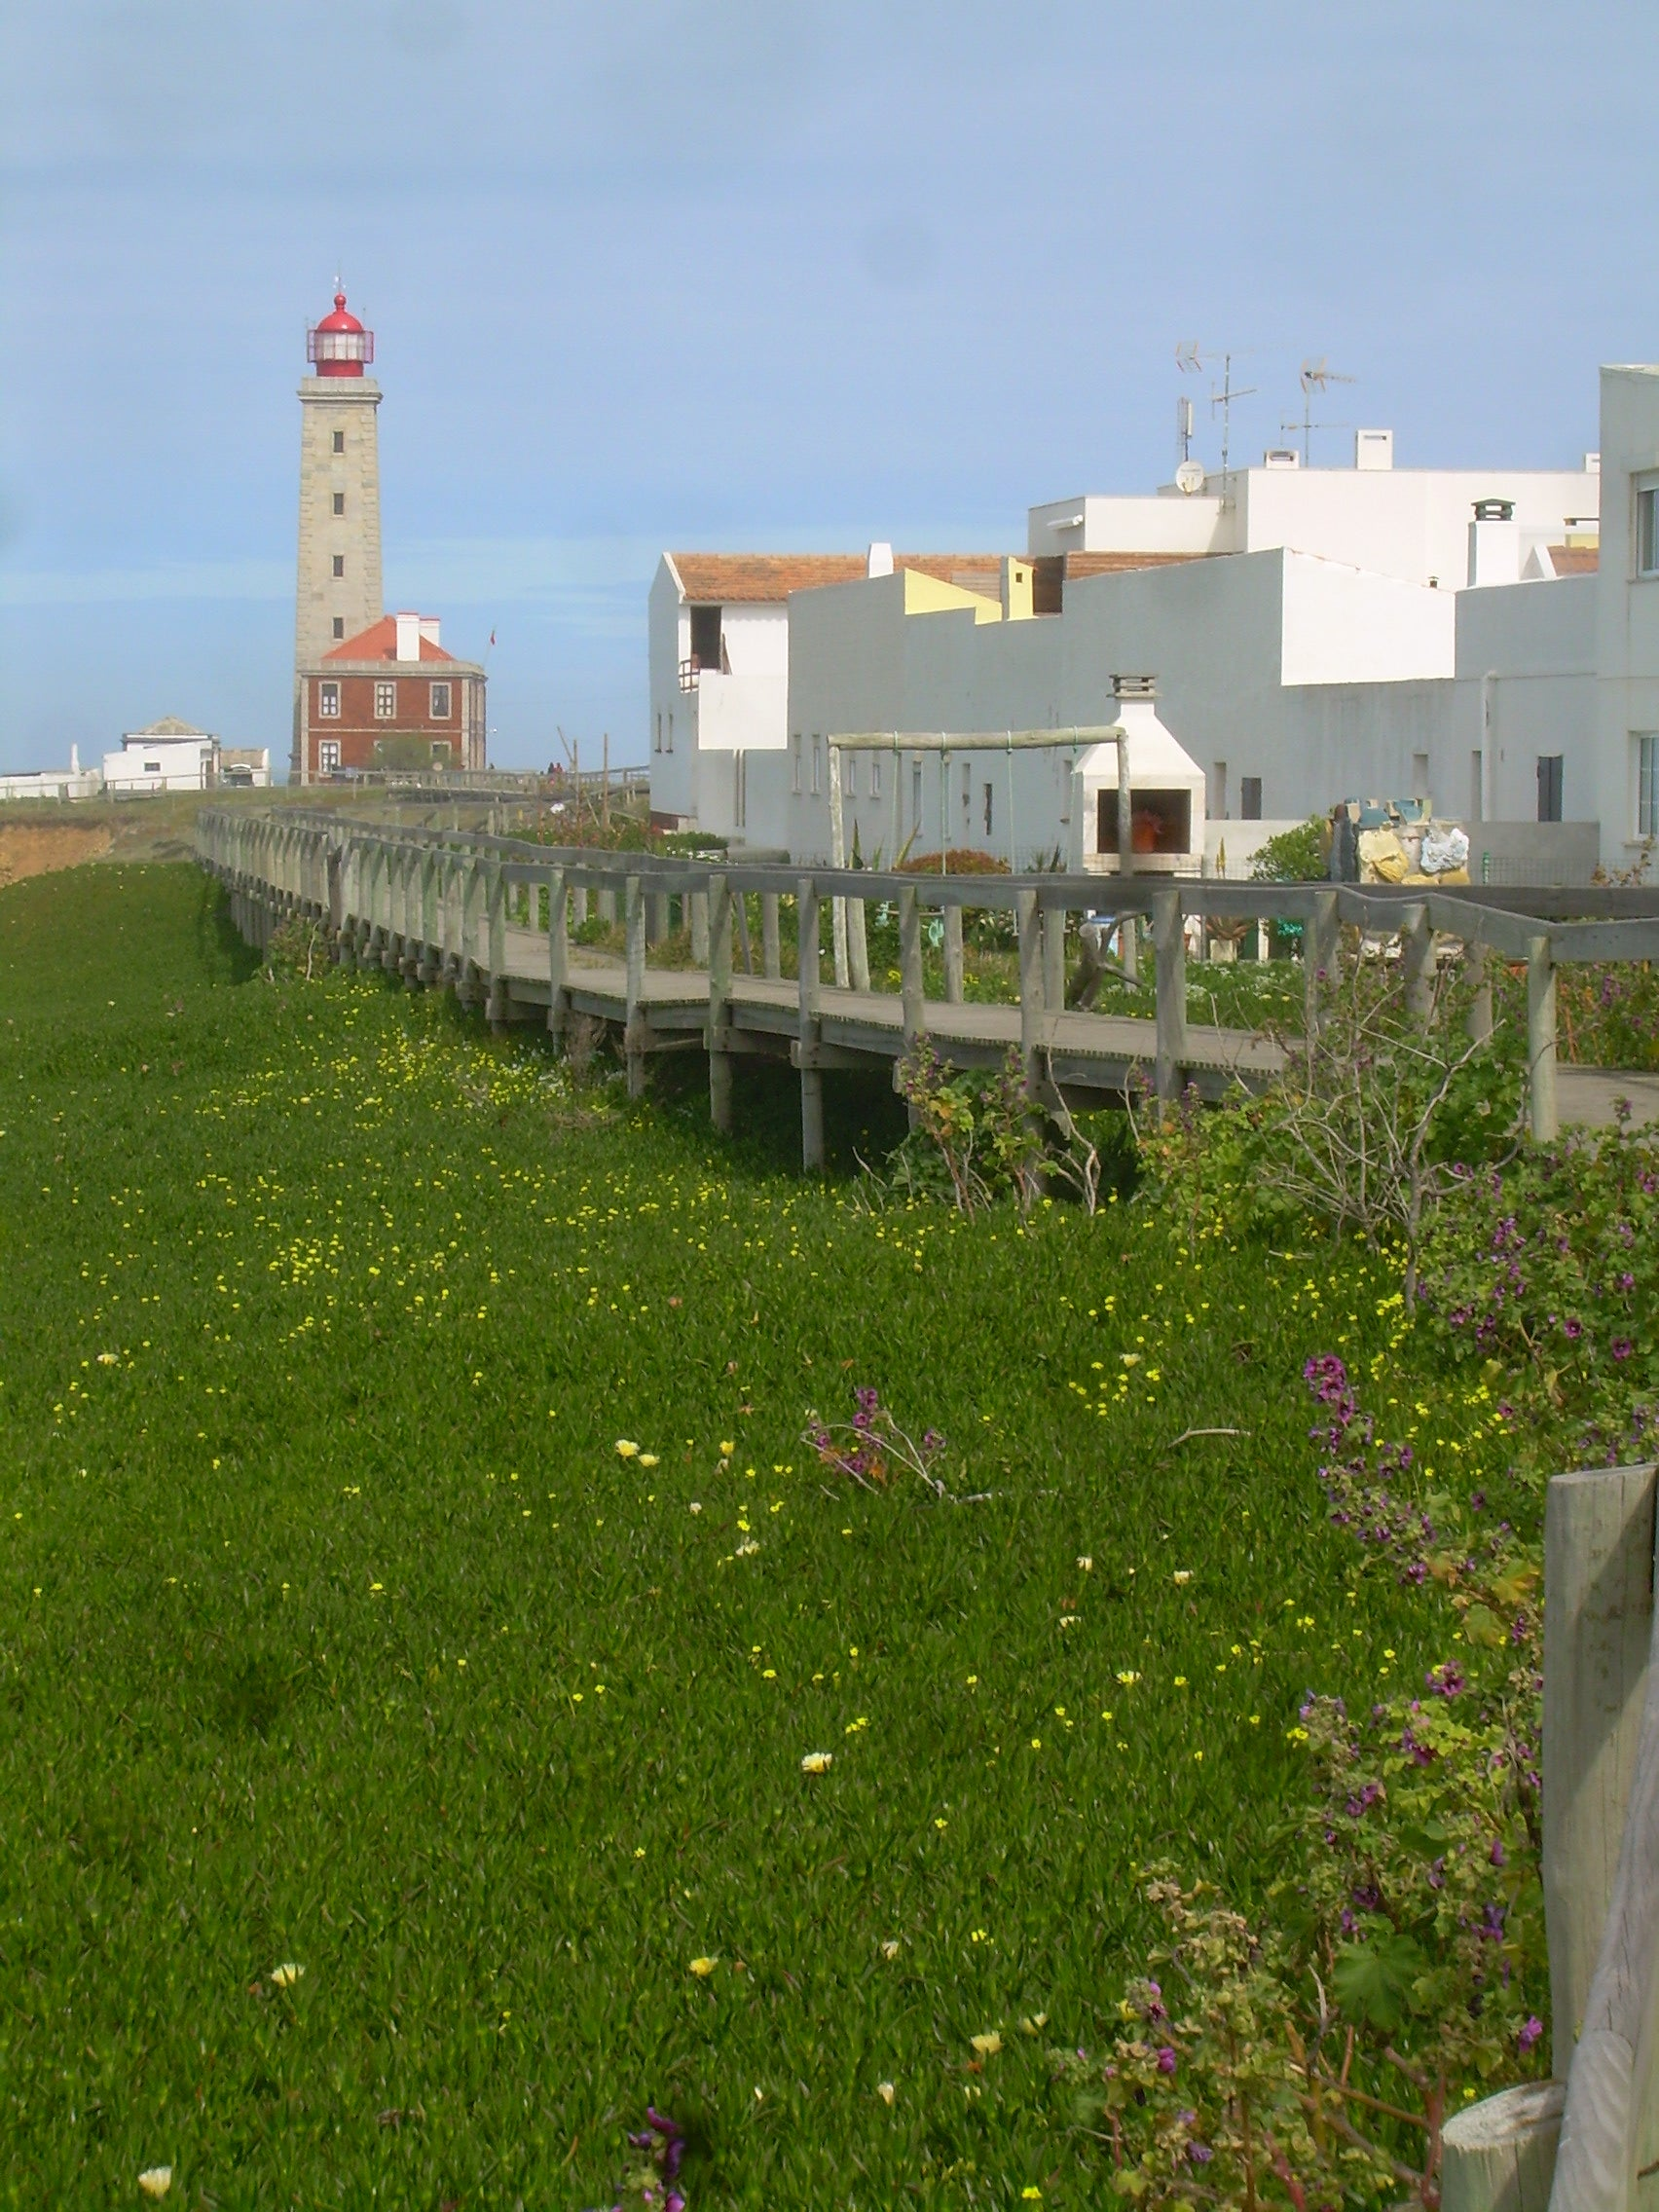 Lighthouse of San Pedro de Muel